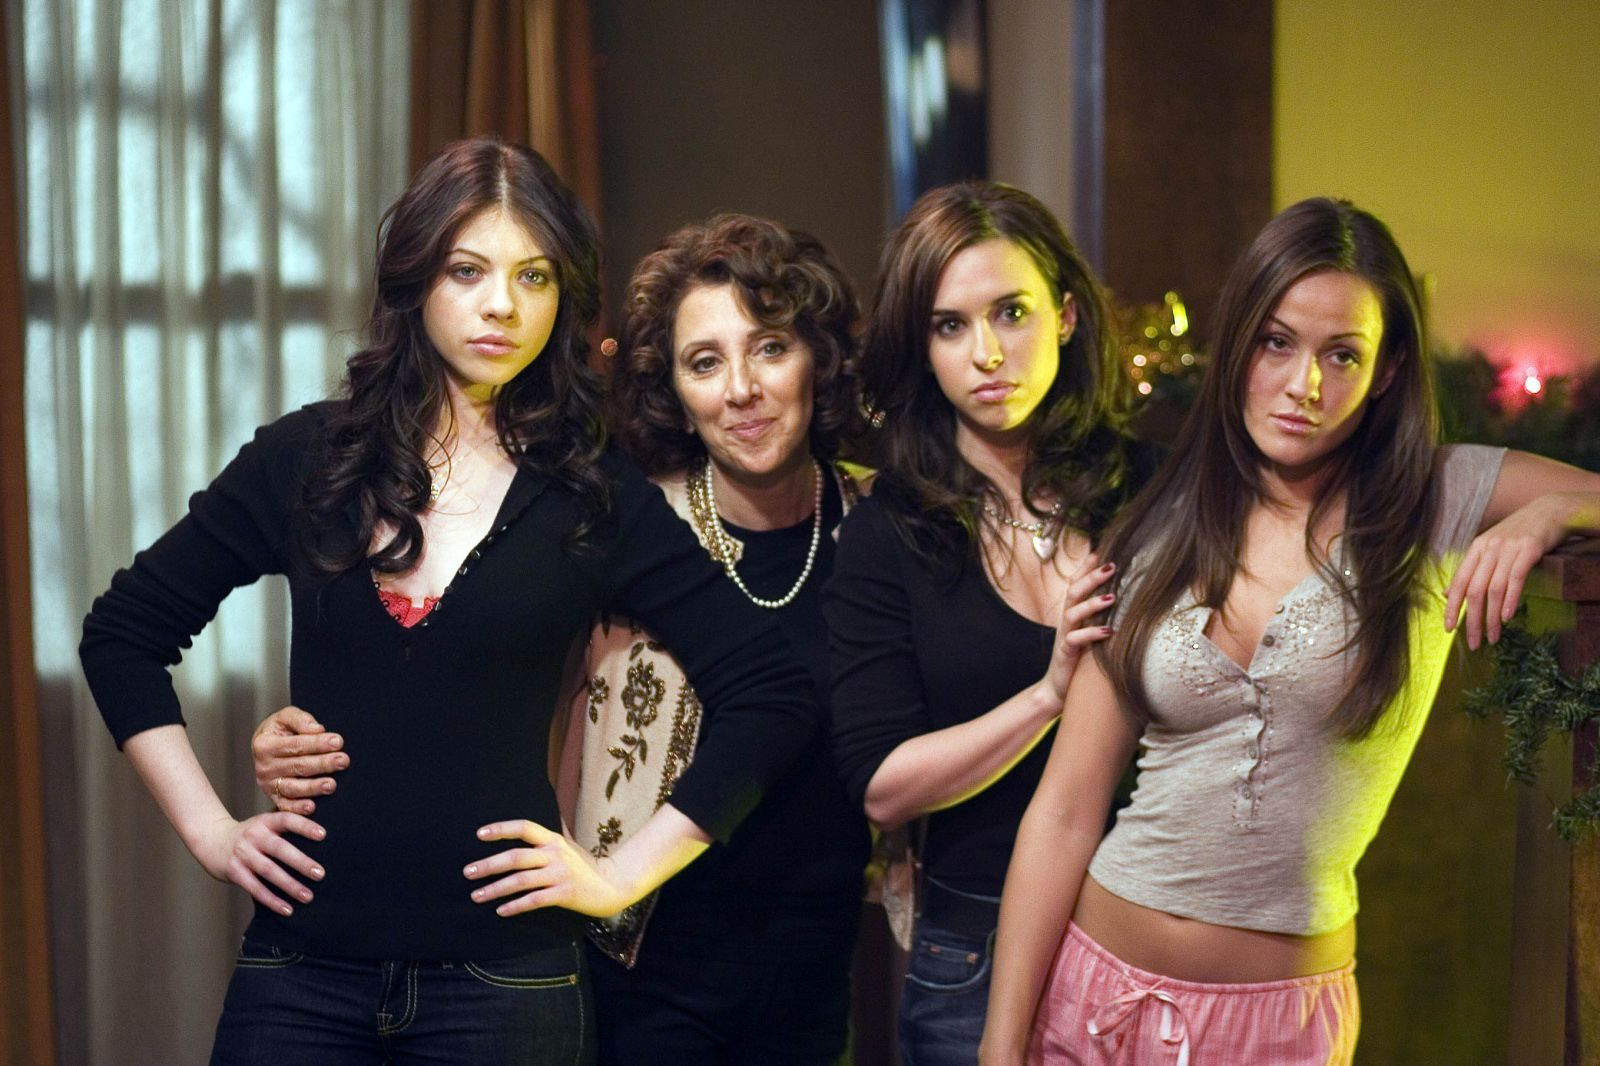 Lacey Chabert, Michelle Trachtenberg, Yan-Kay Crystal Lowe, and Andrea Martin in Black Christmas (2006)